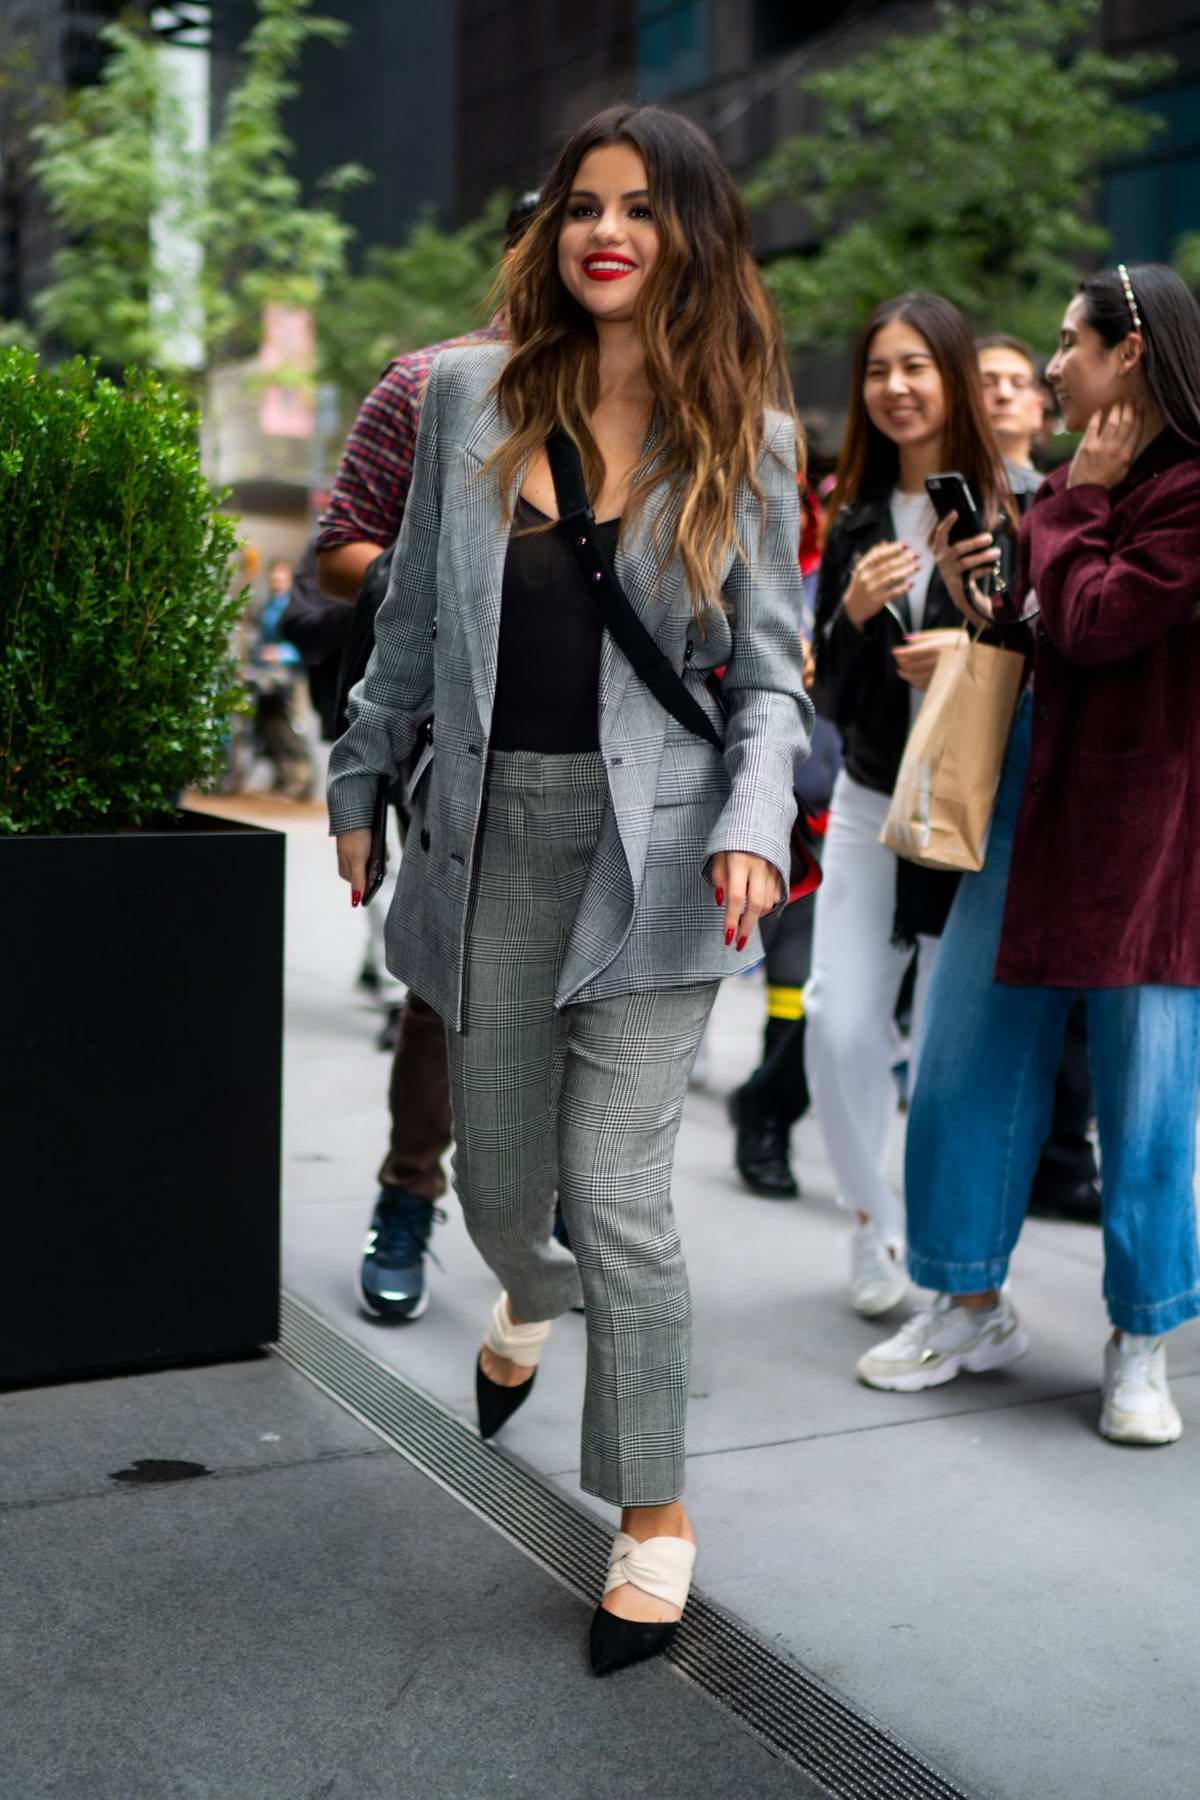 Selena Gomez takes a break while promoting her new album as she returns to her Midtown hotel in New York City